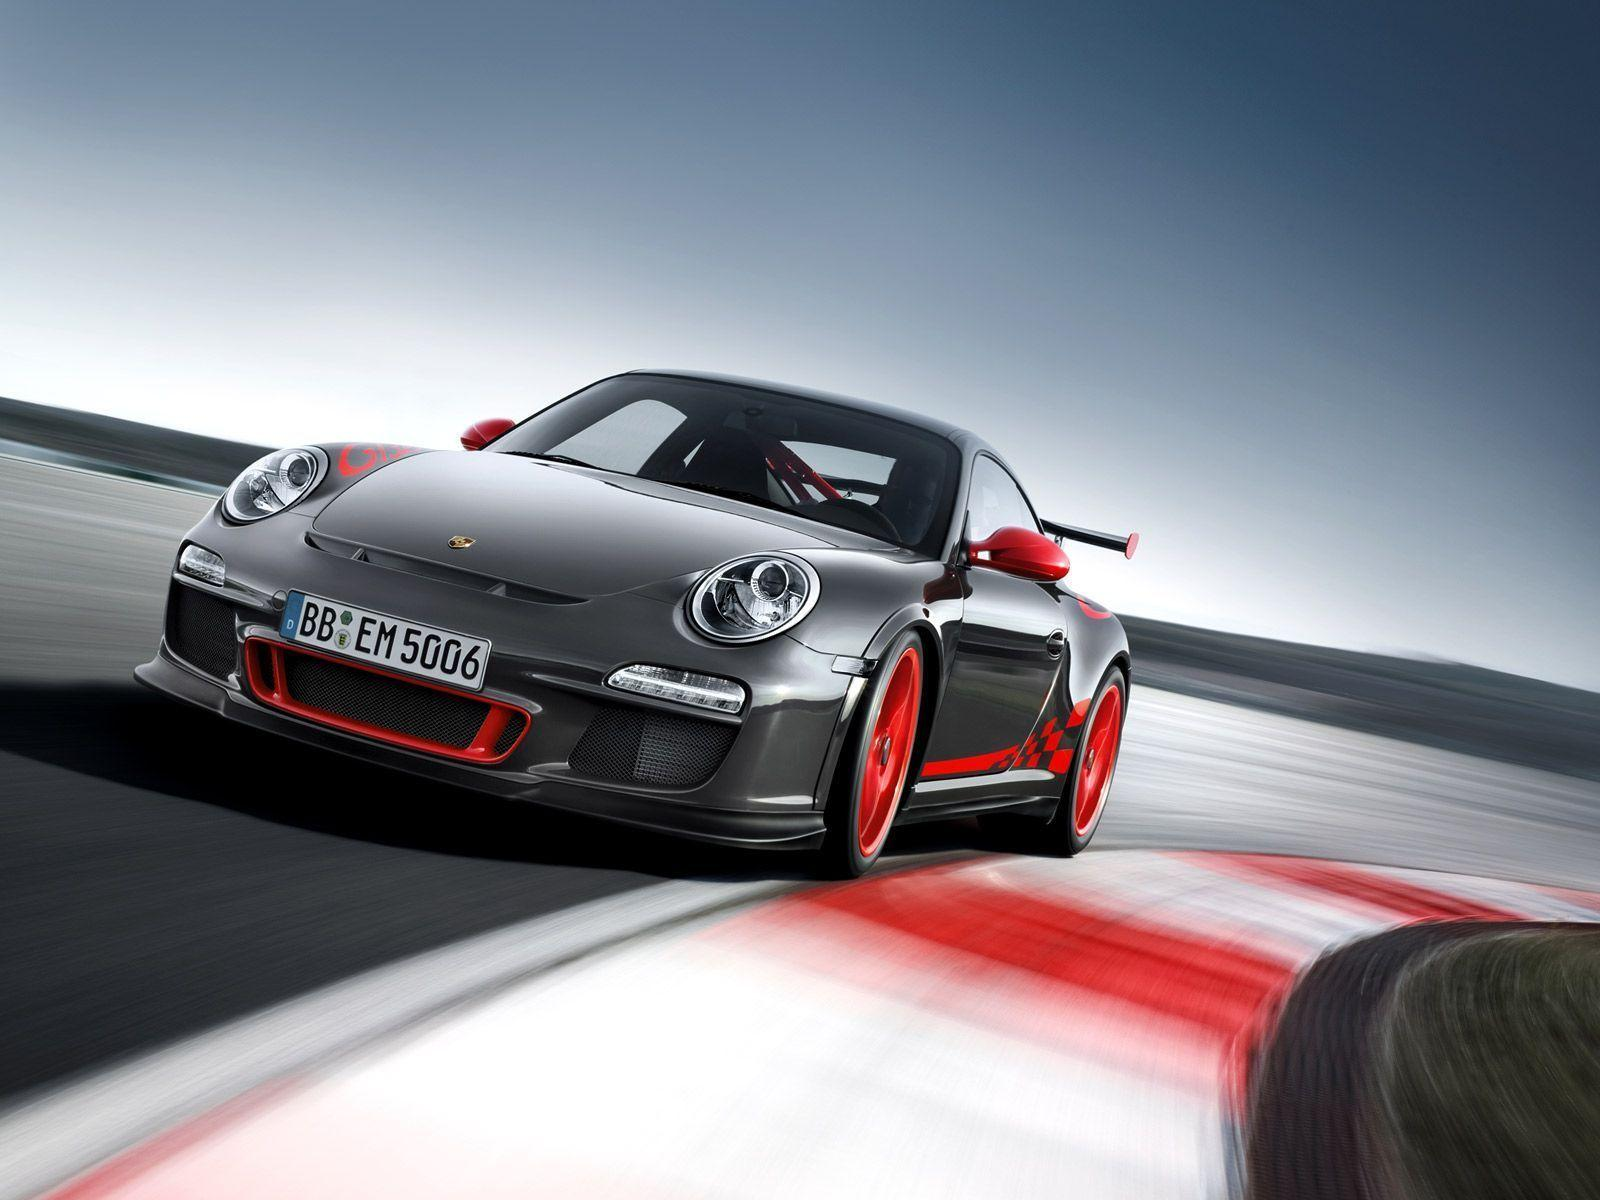 Porsche wallpapers | Porsche background - Page 20